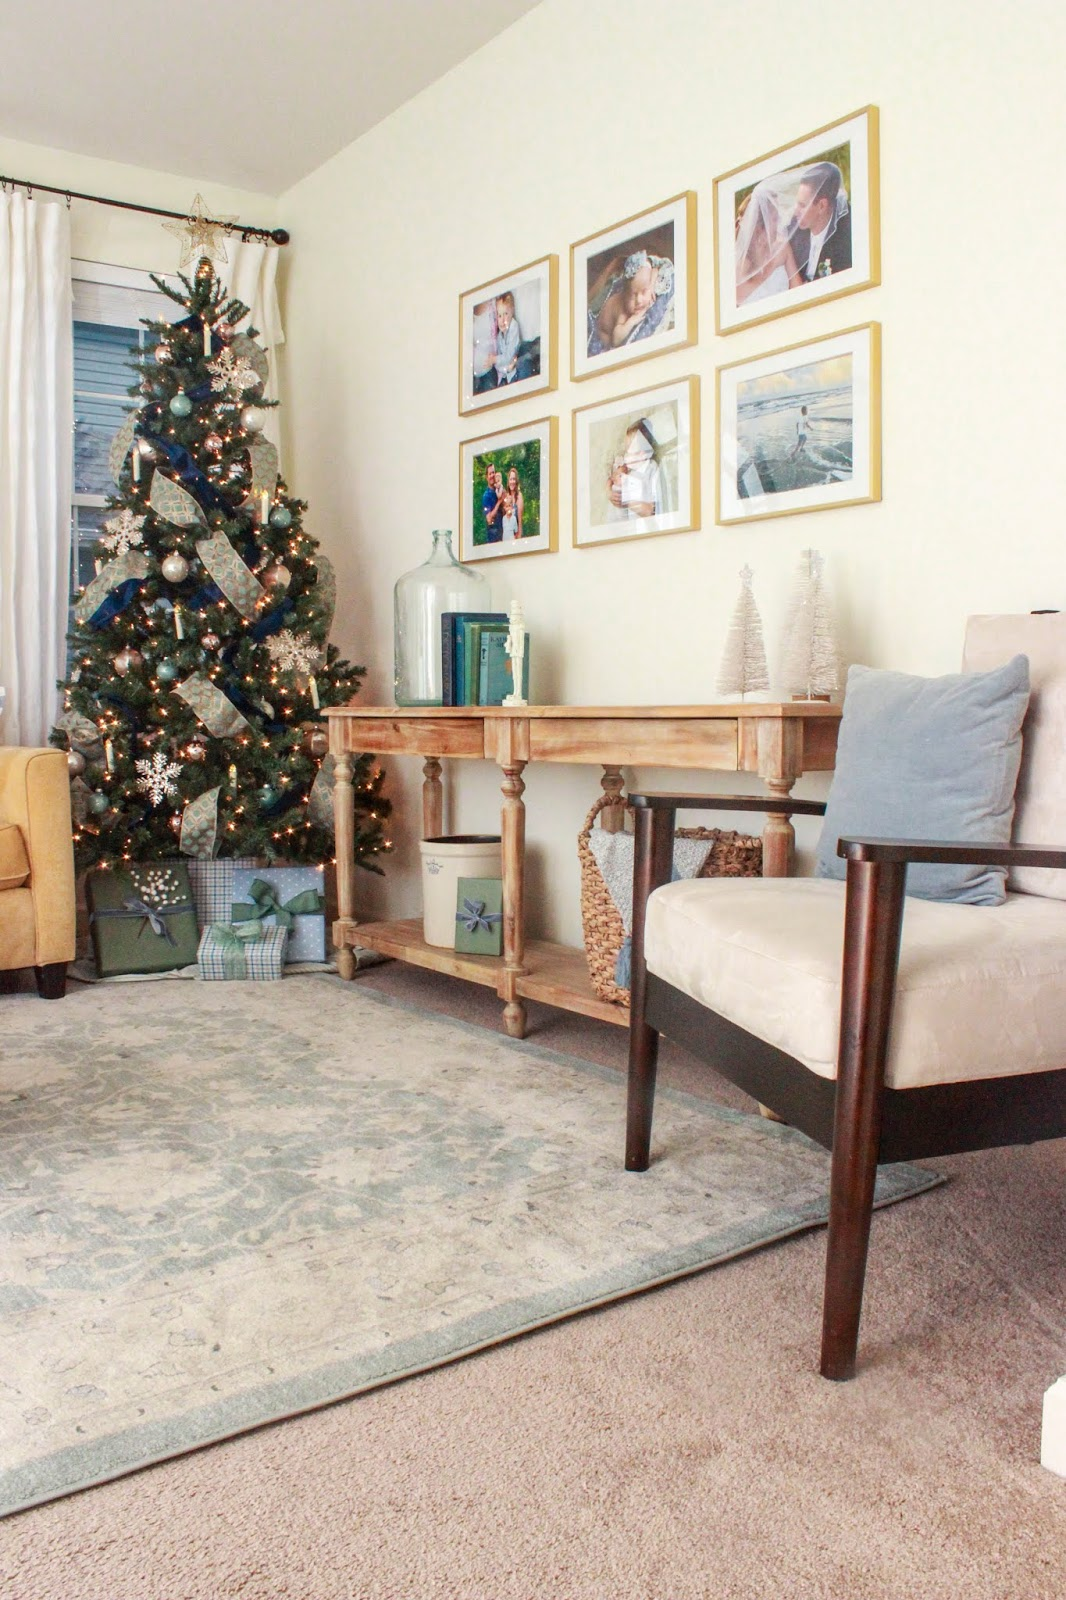 decorating with blues and greens for christmas